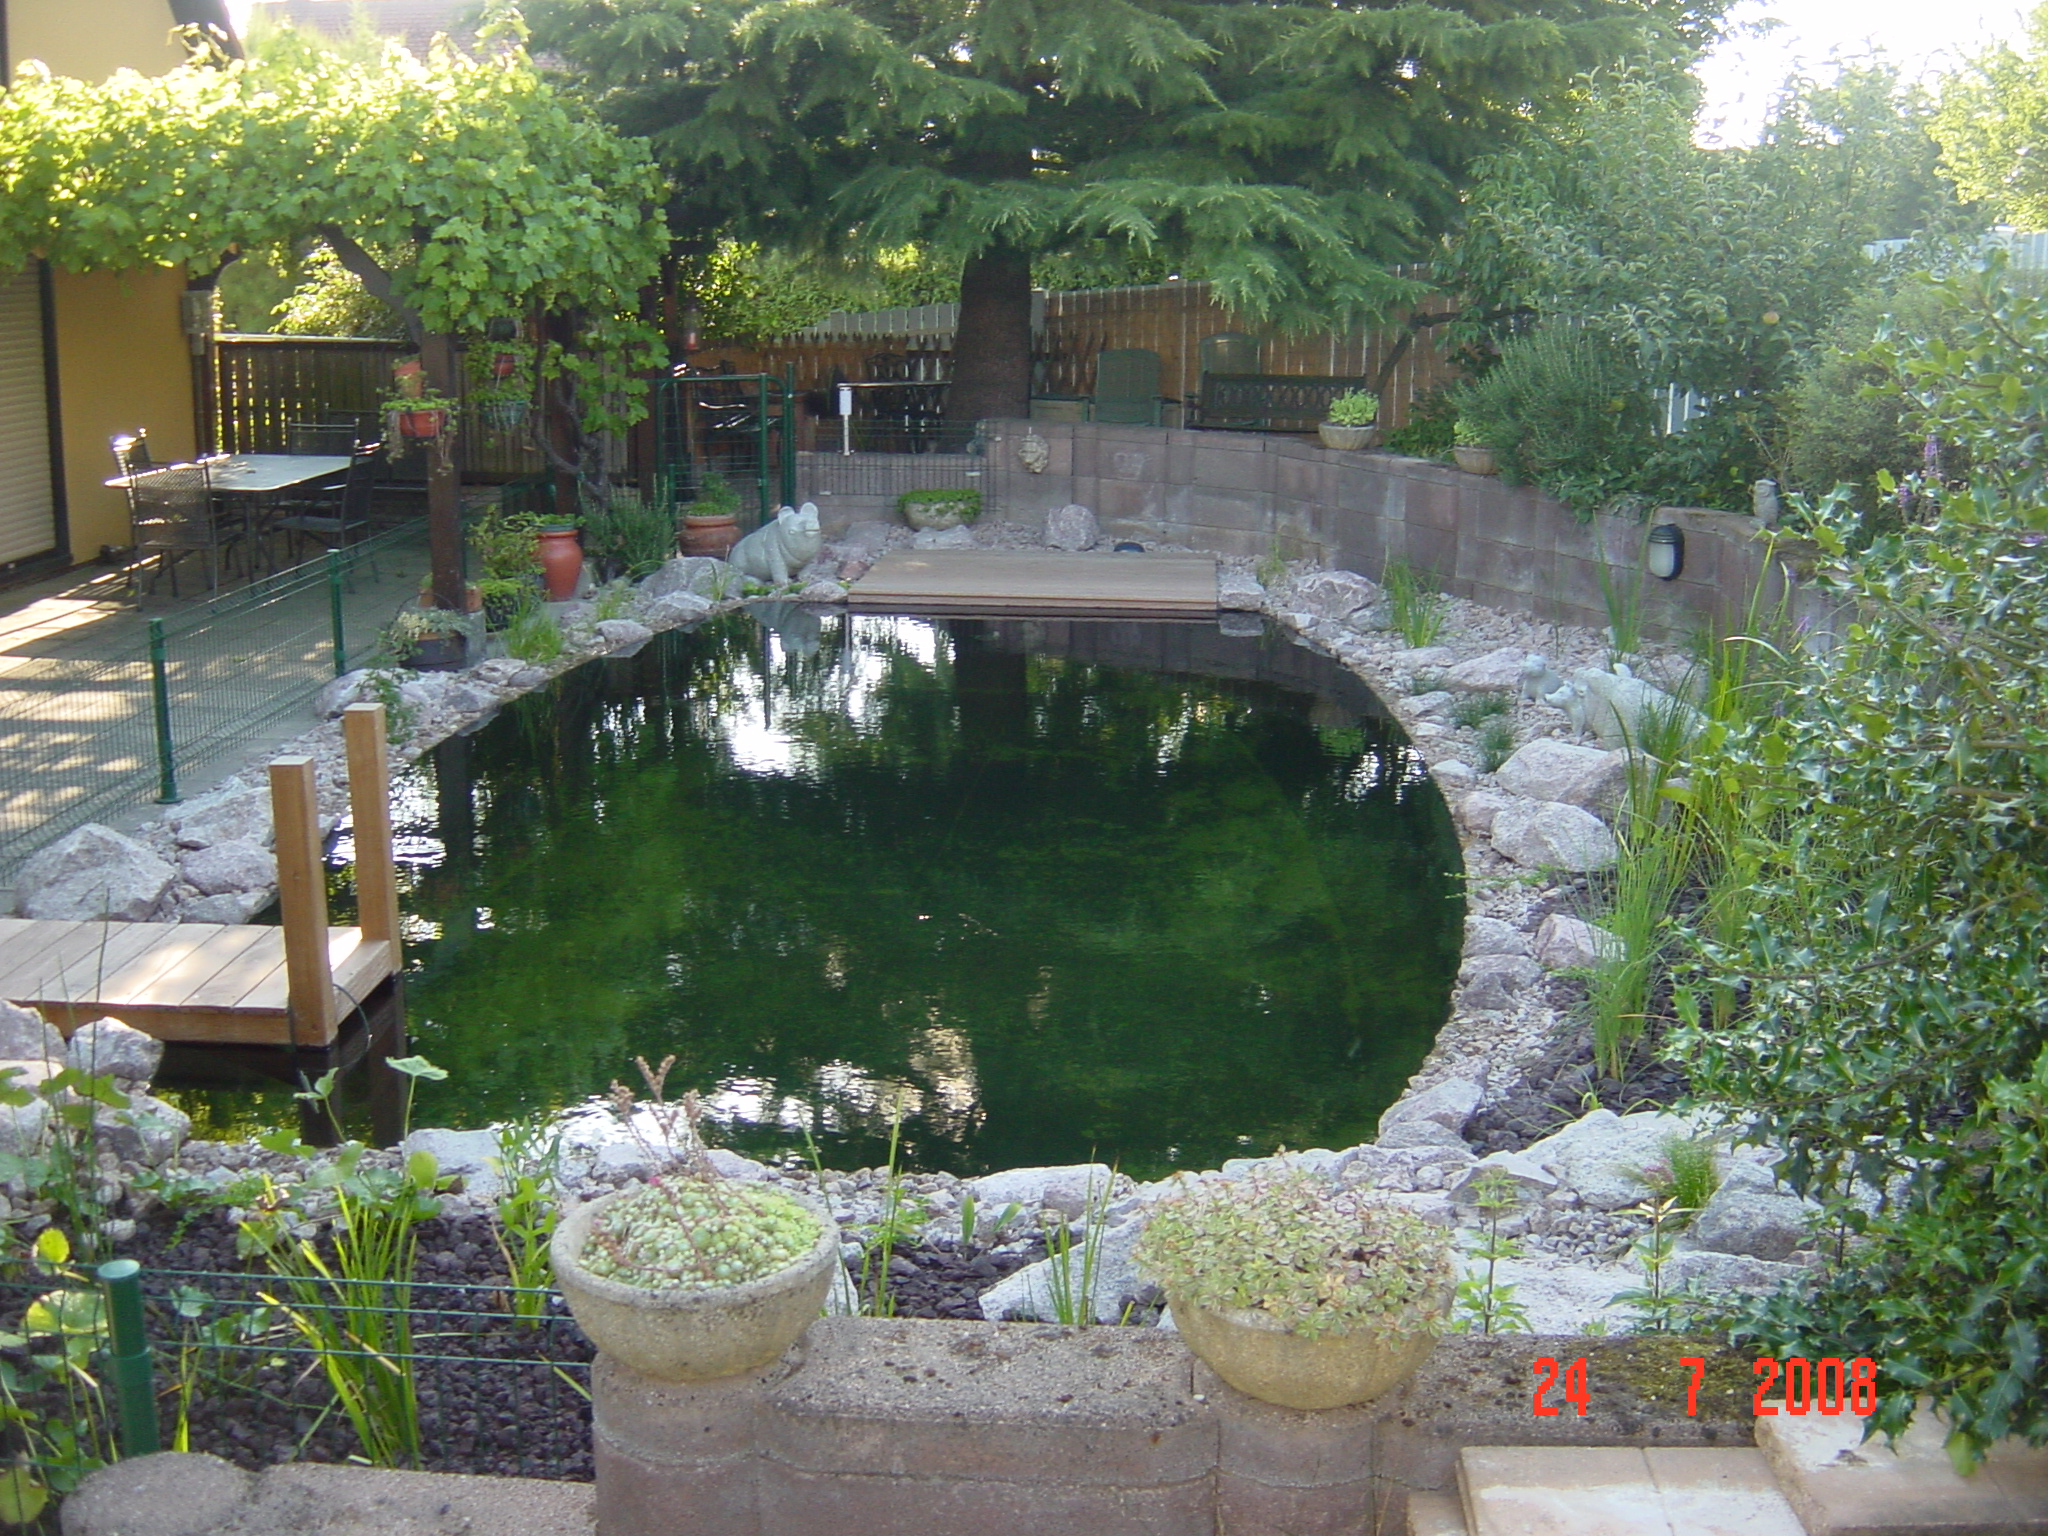 Transformation d une piscine en baignade naturelle barr for Transformation piscine